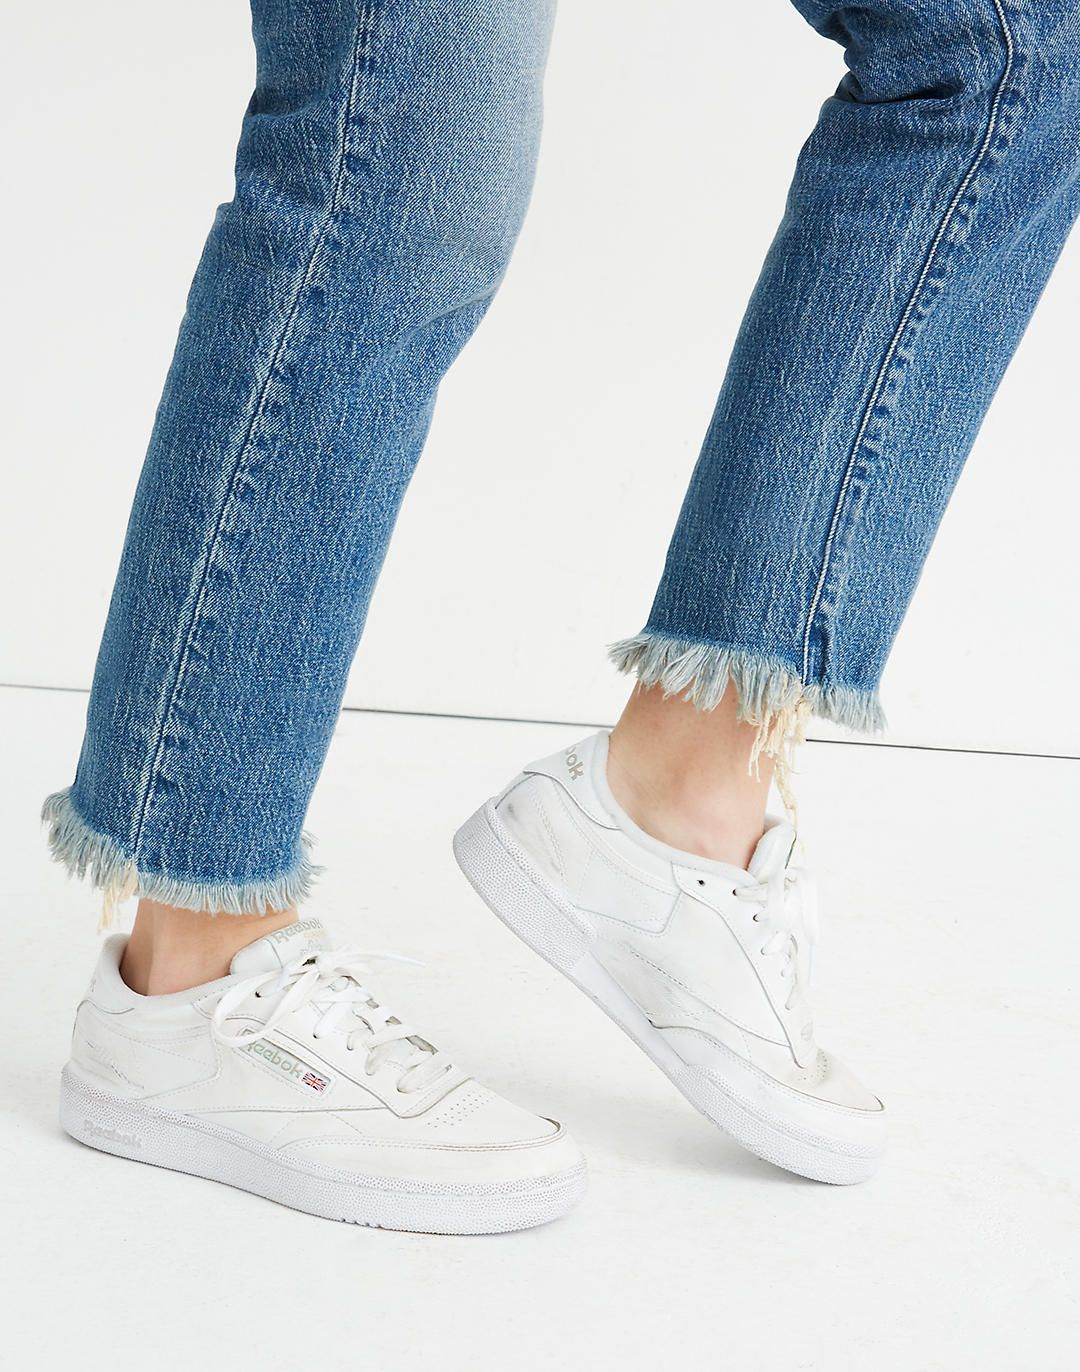 Club C 85 Shoes | White tennis shoes outfit, White tennis